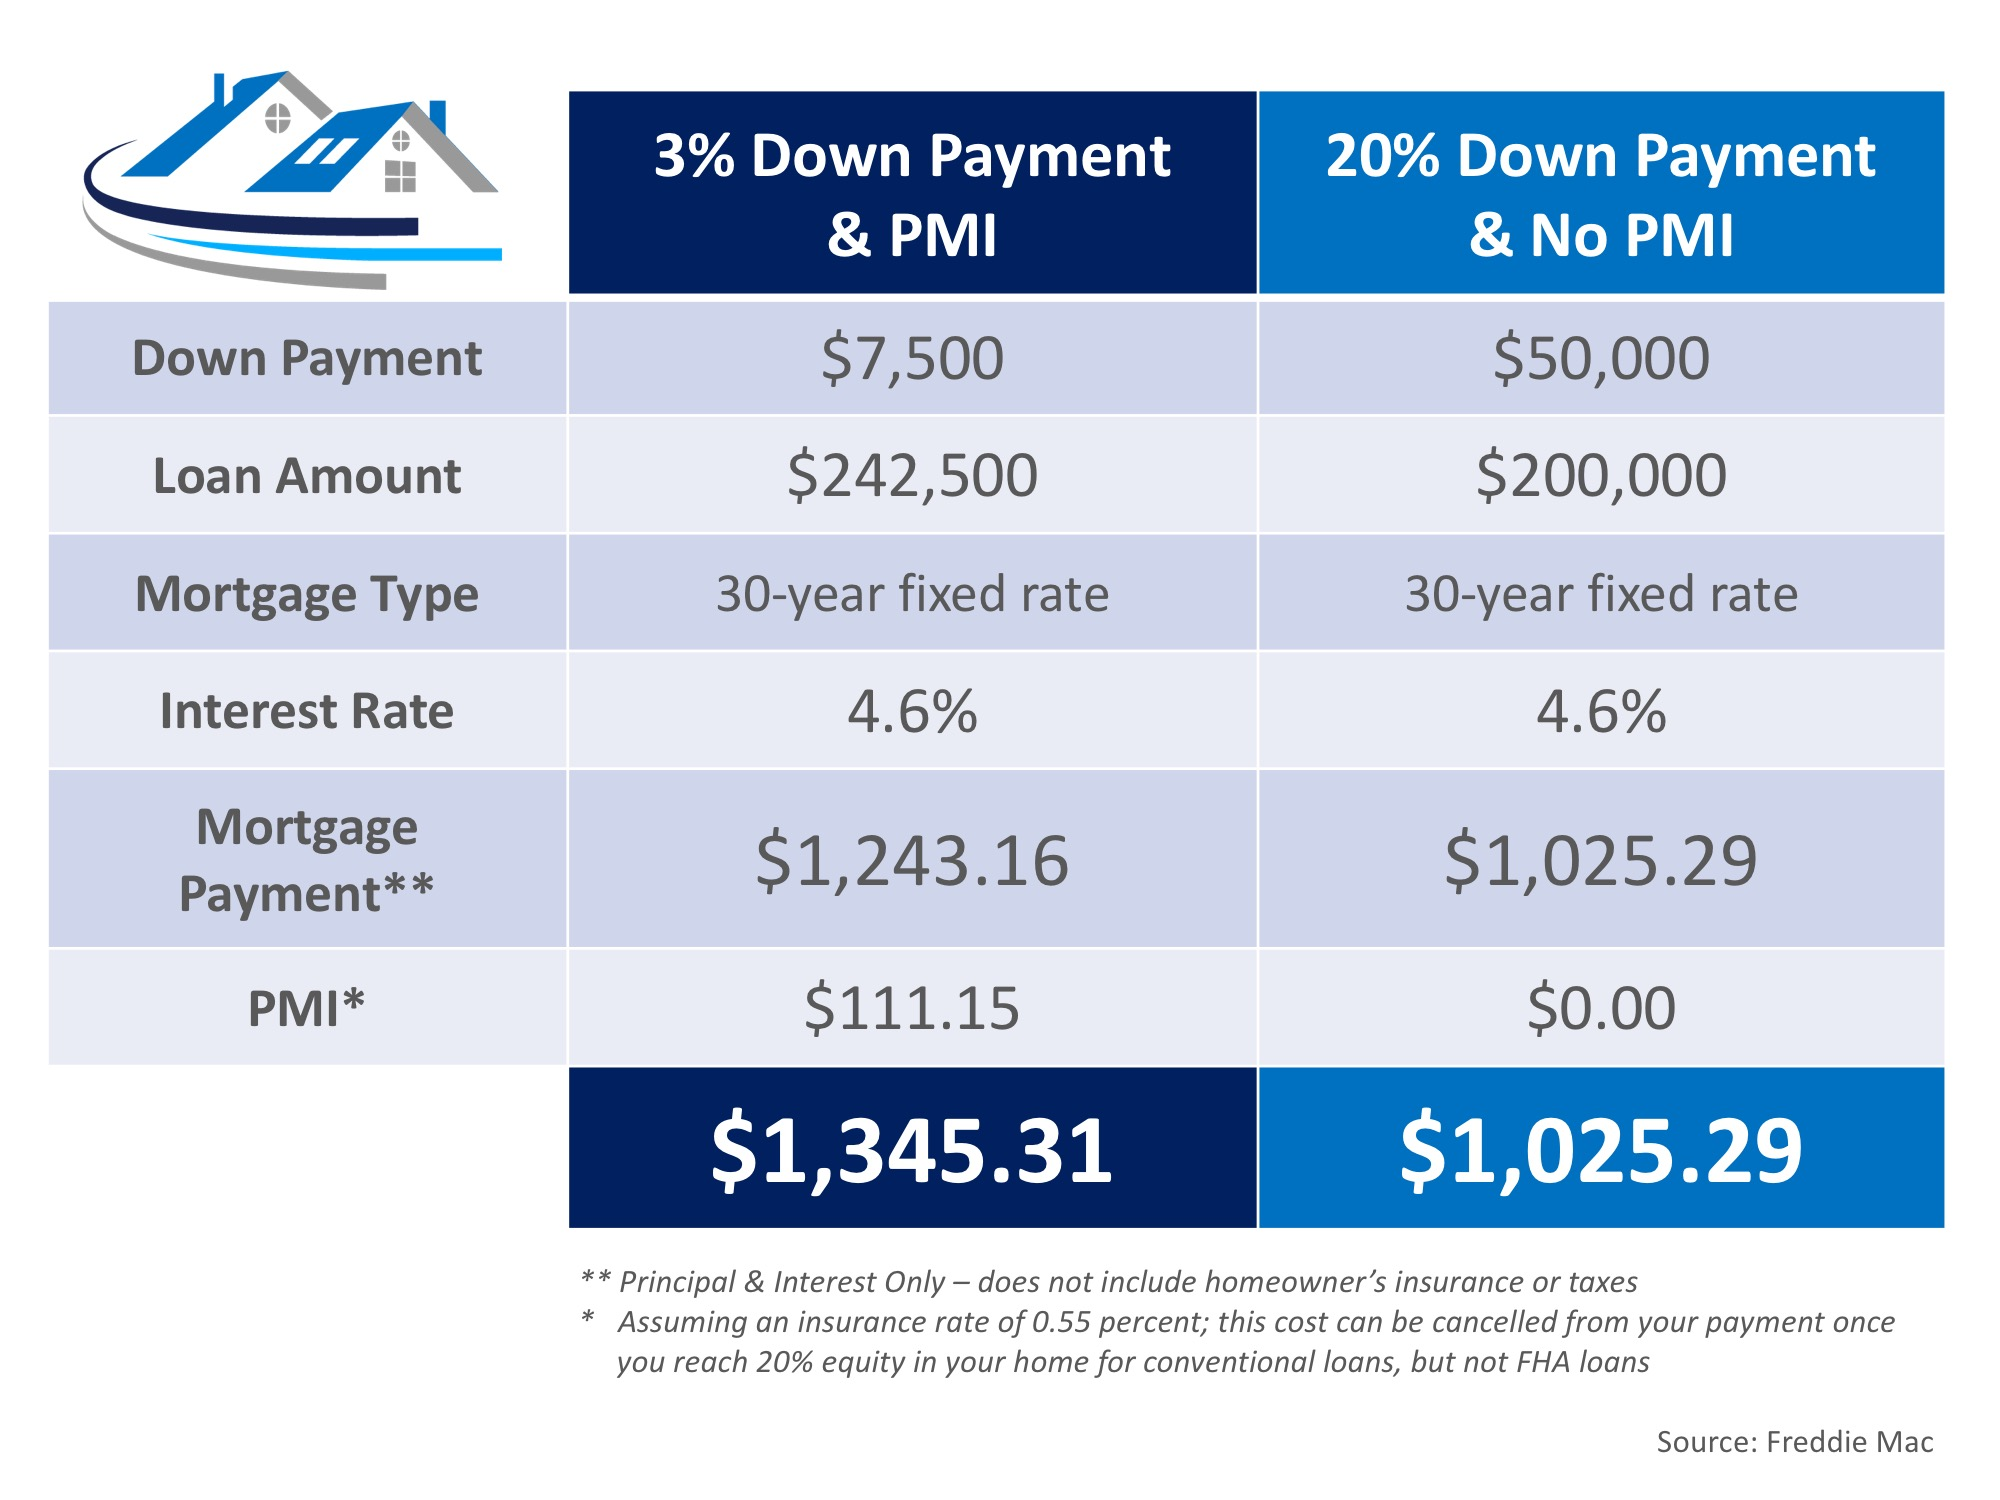 Cost of NOT Paying PMI